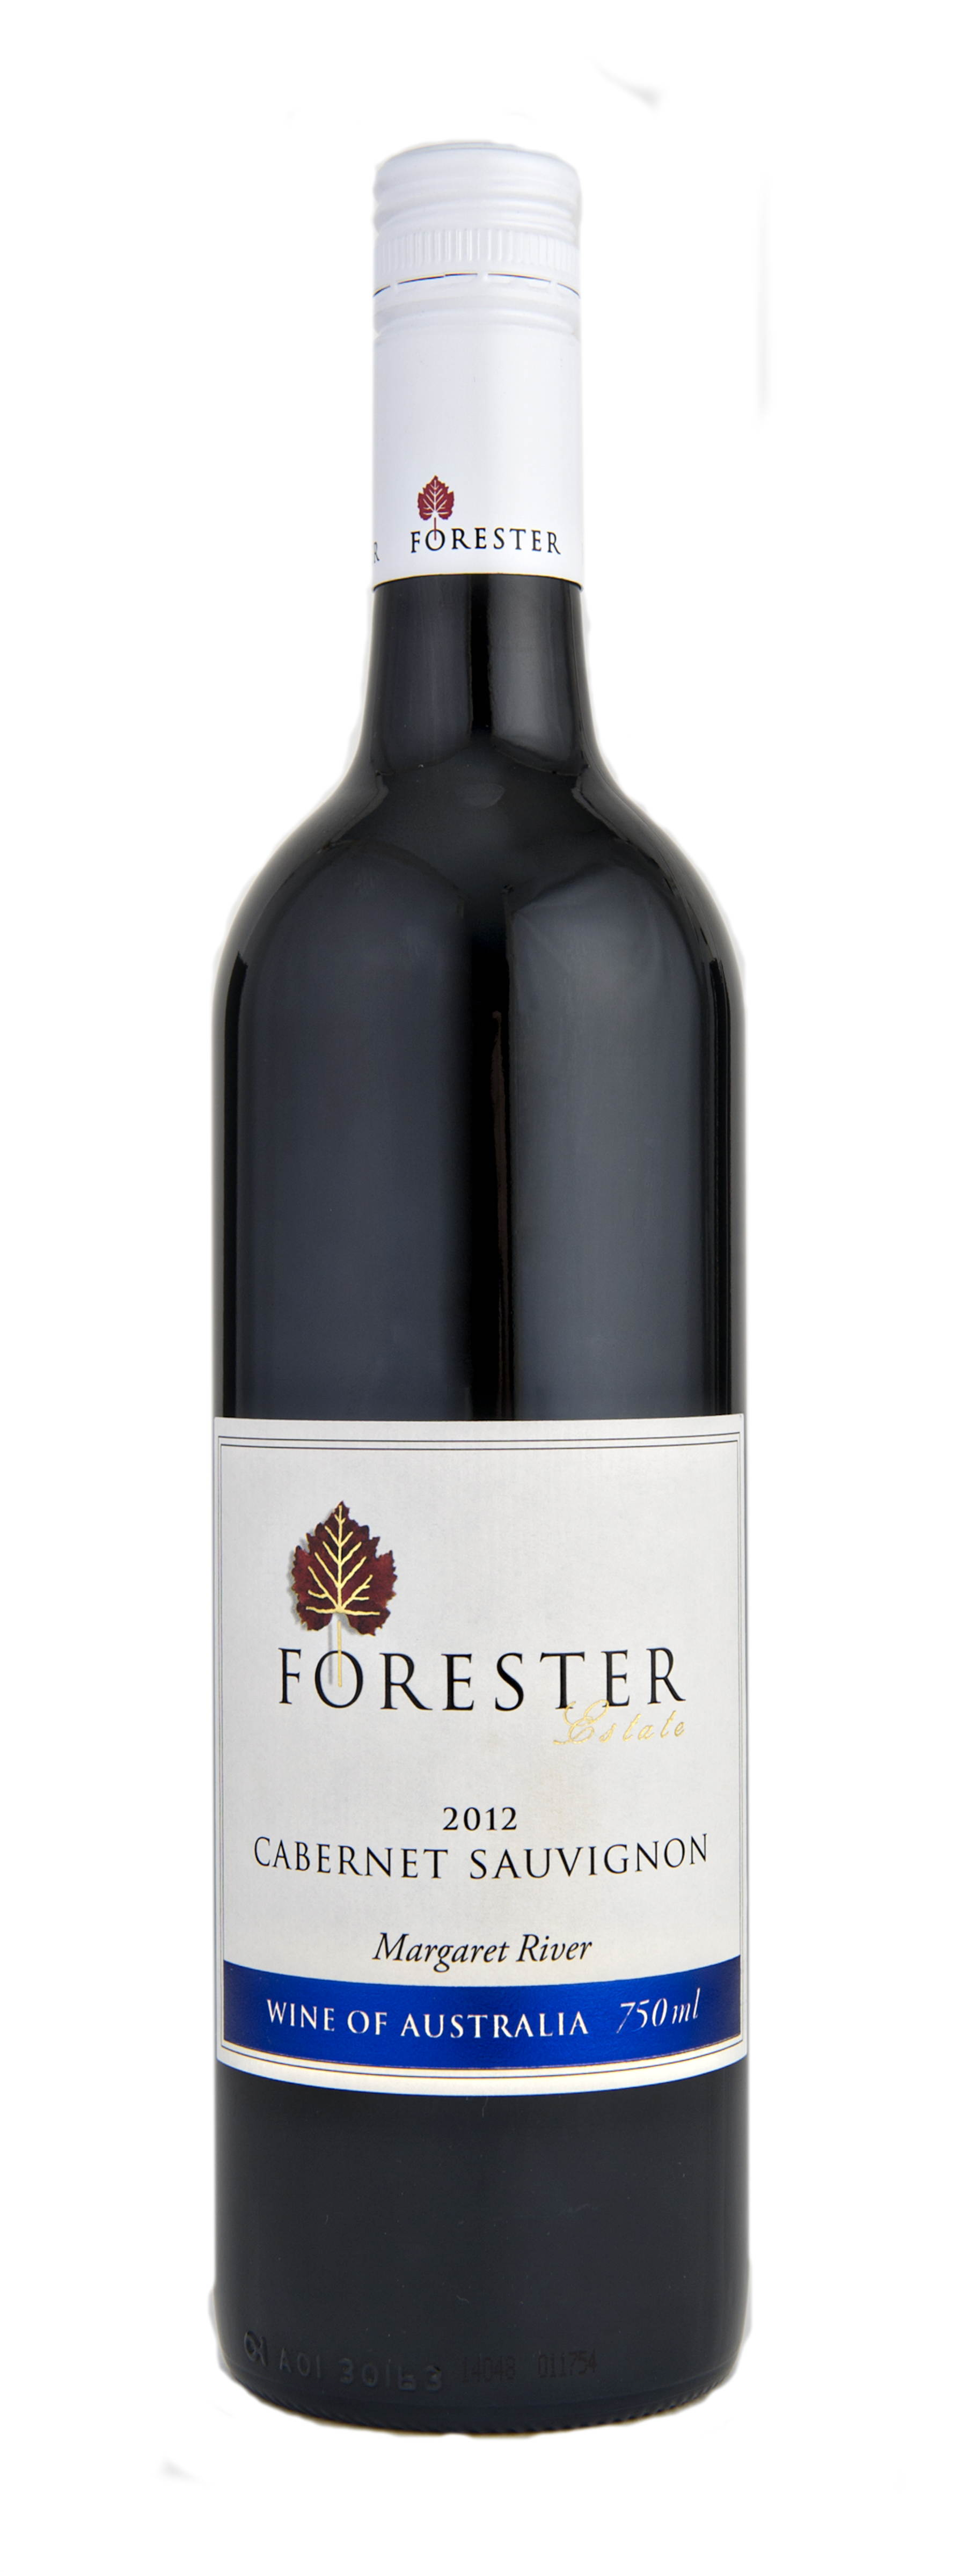 A Great Wine for a Roast Lamb Dinner